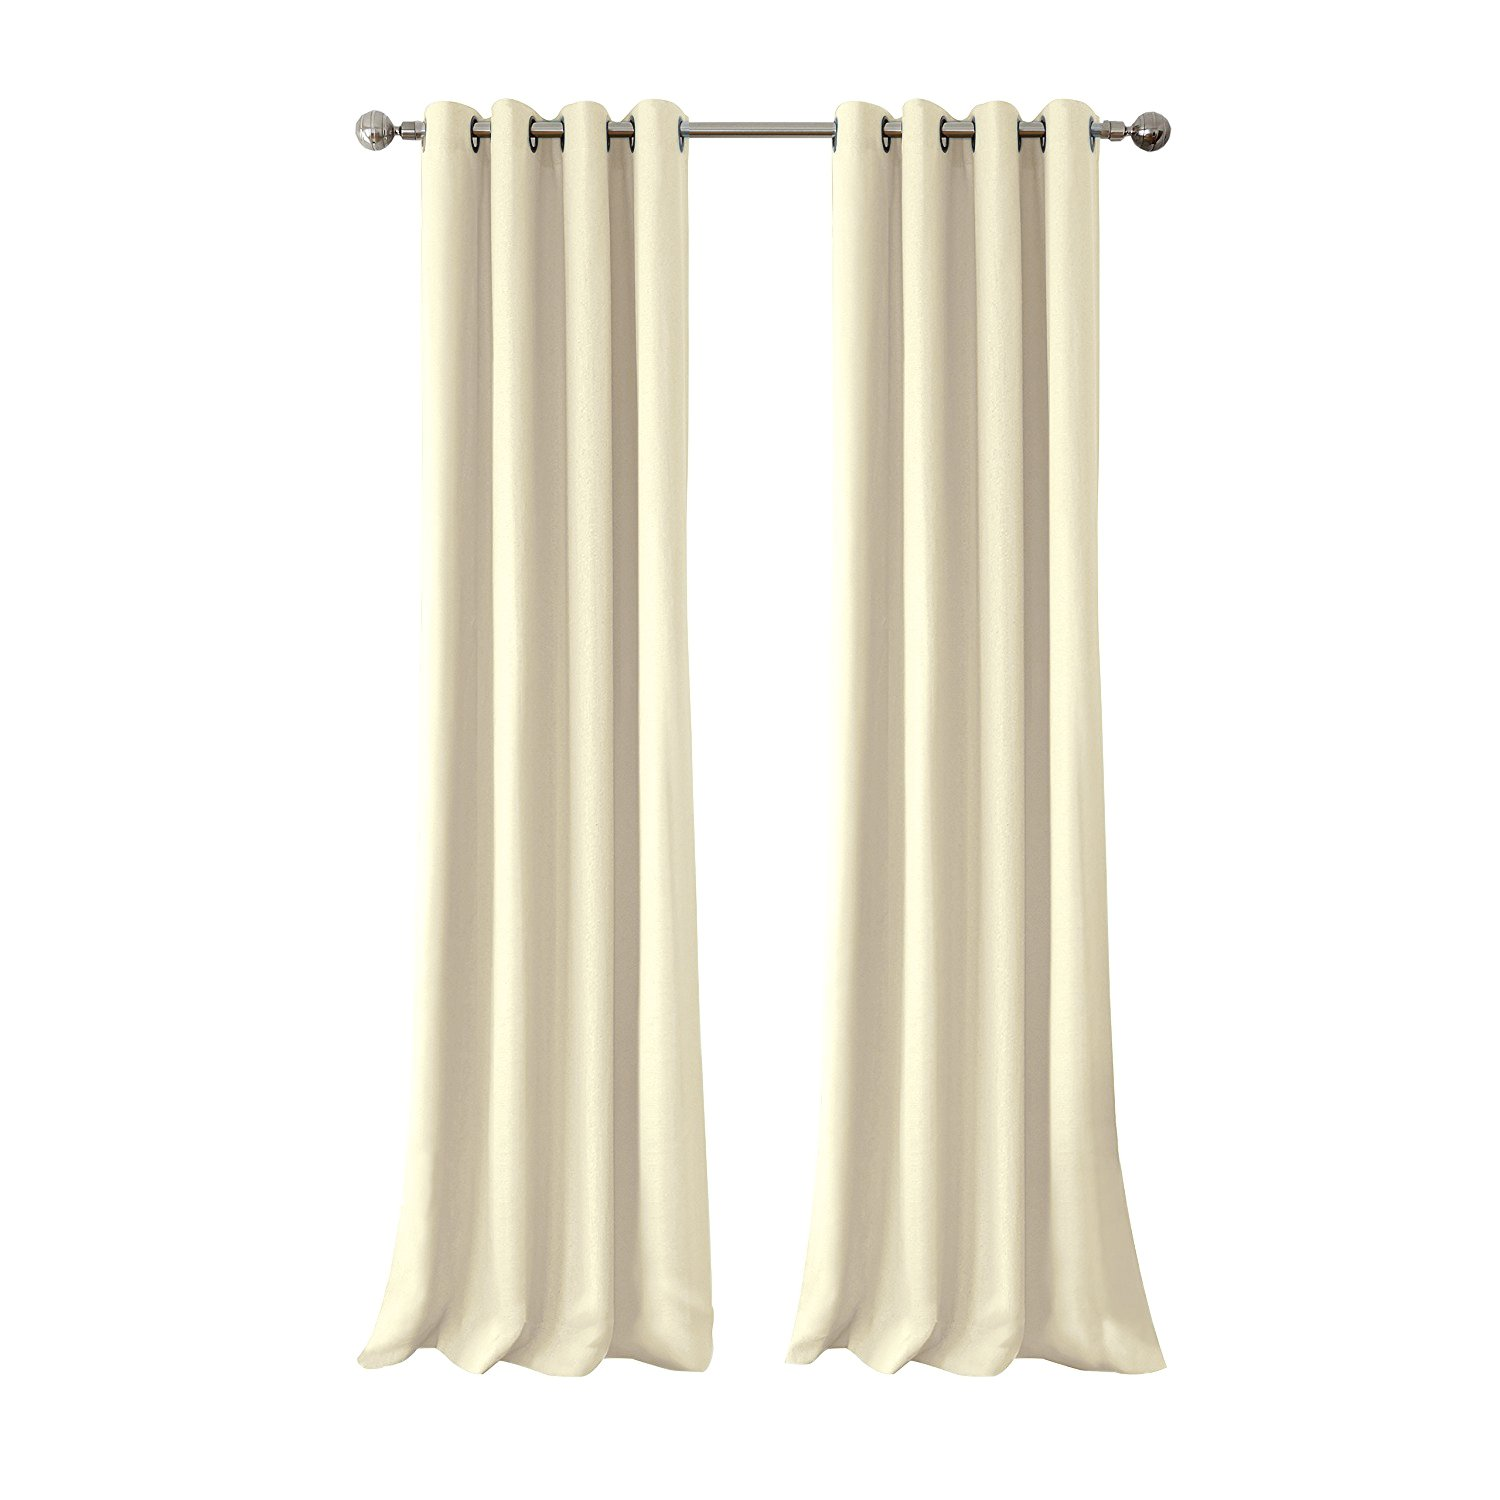 Outdoor Curtain Panel for Patio 50x96-Inch - Home Cal Versatile Thermal Insulated Grommets Blackout UV Ray Protected Waterproof Outdoor Curtain/Drape for Patio/Front Porch, Beige by Shatex (Image #2)